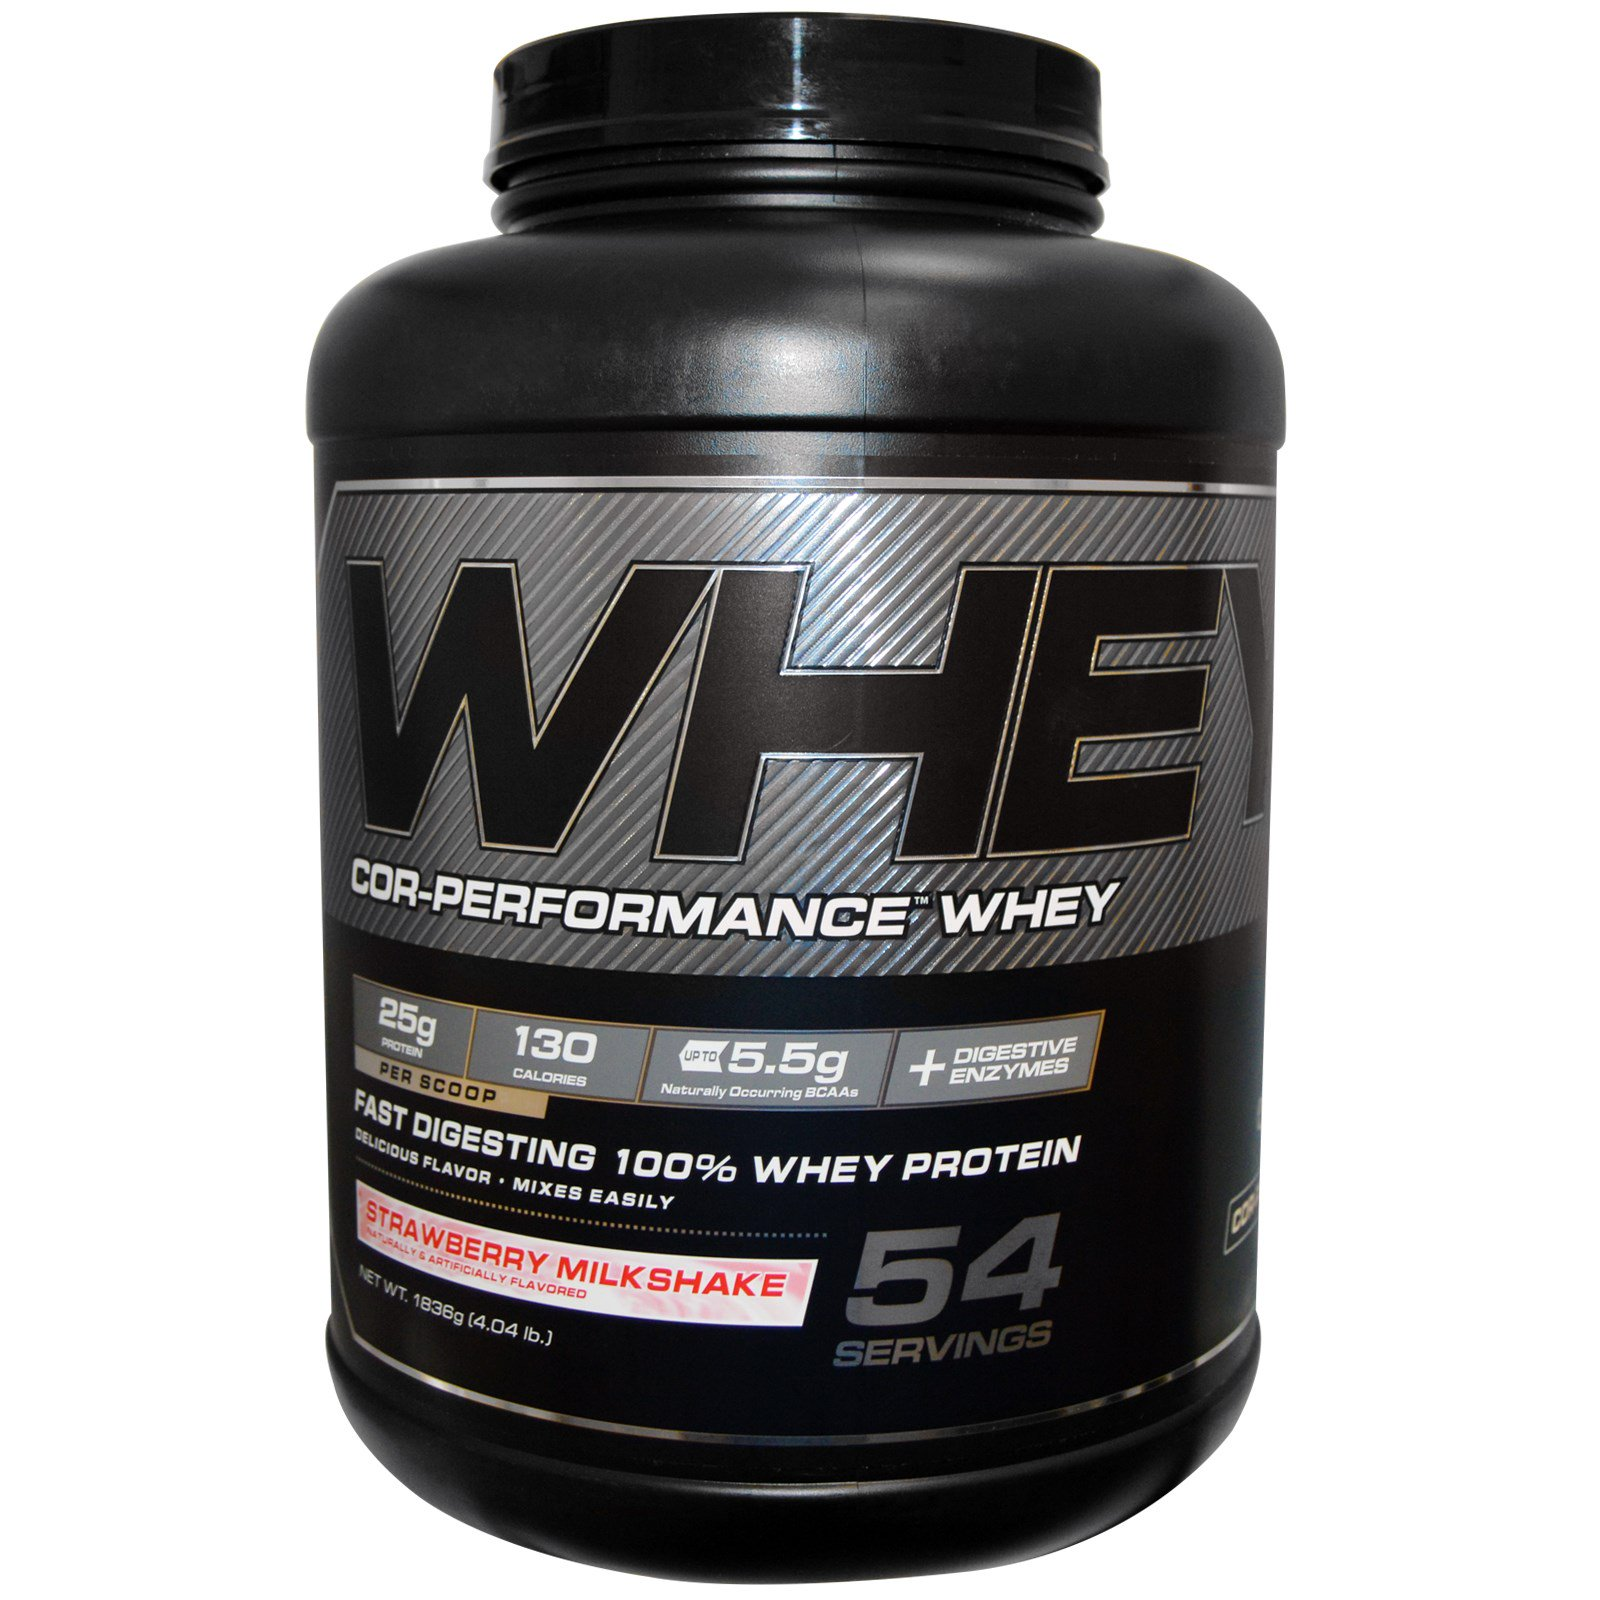 COR-Performance Whey 4lb straw.- COR